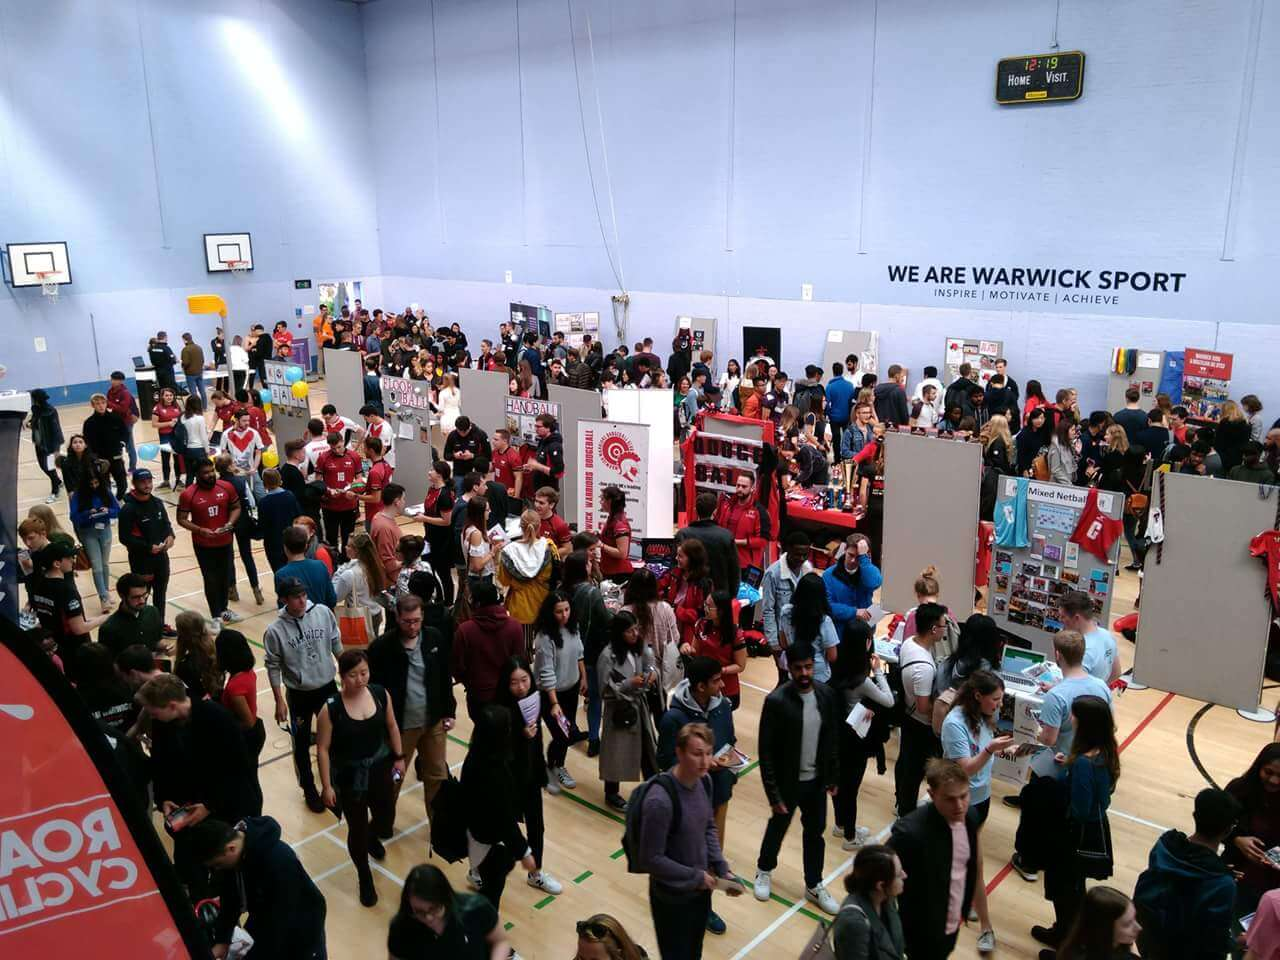 Sports Clubs, Societies and Volunteering Opportunities: Where to Begin?